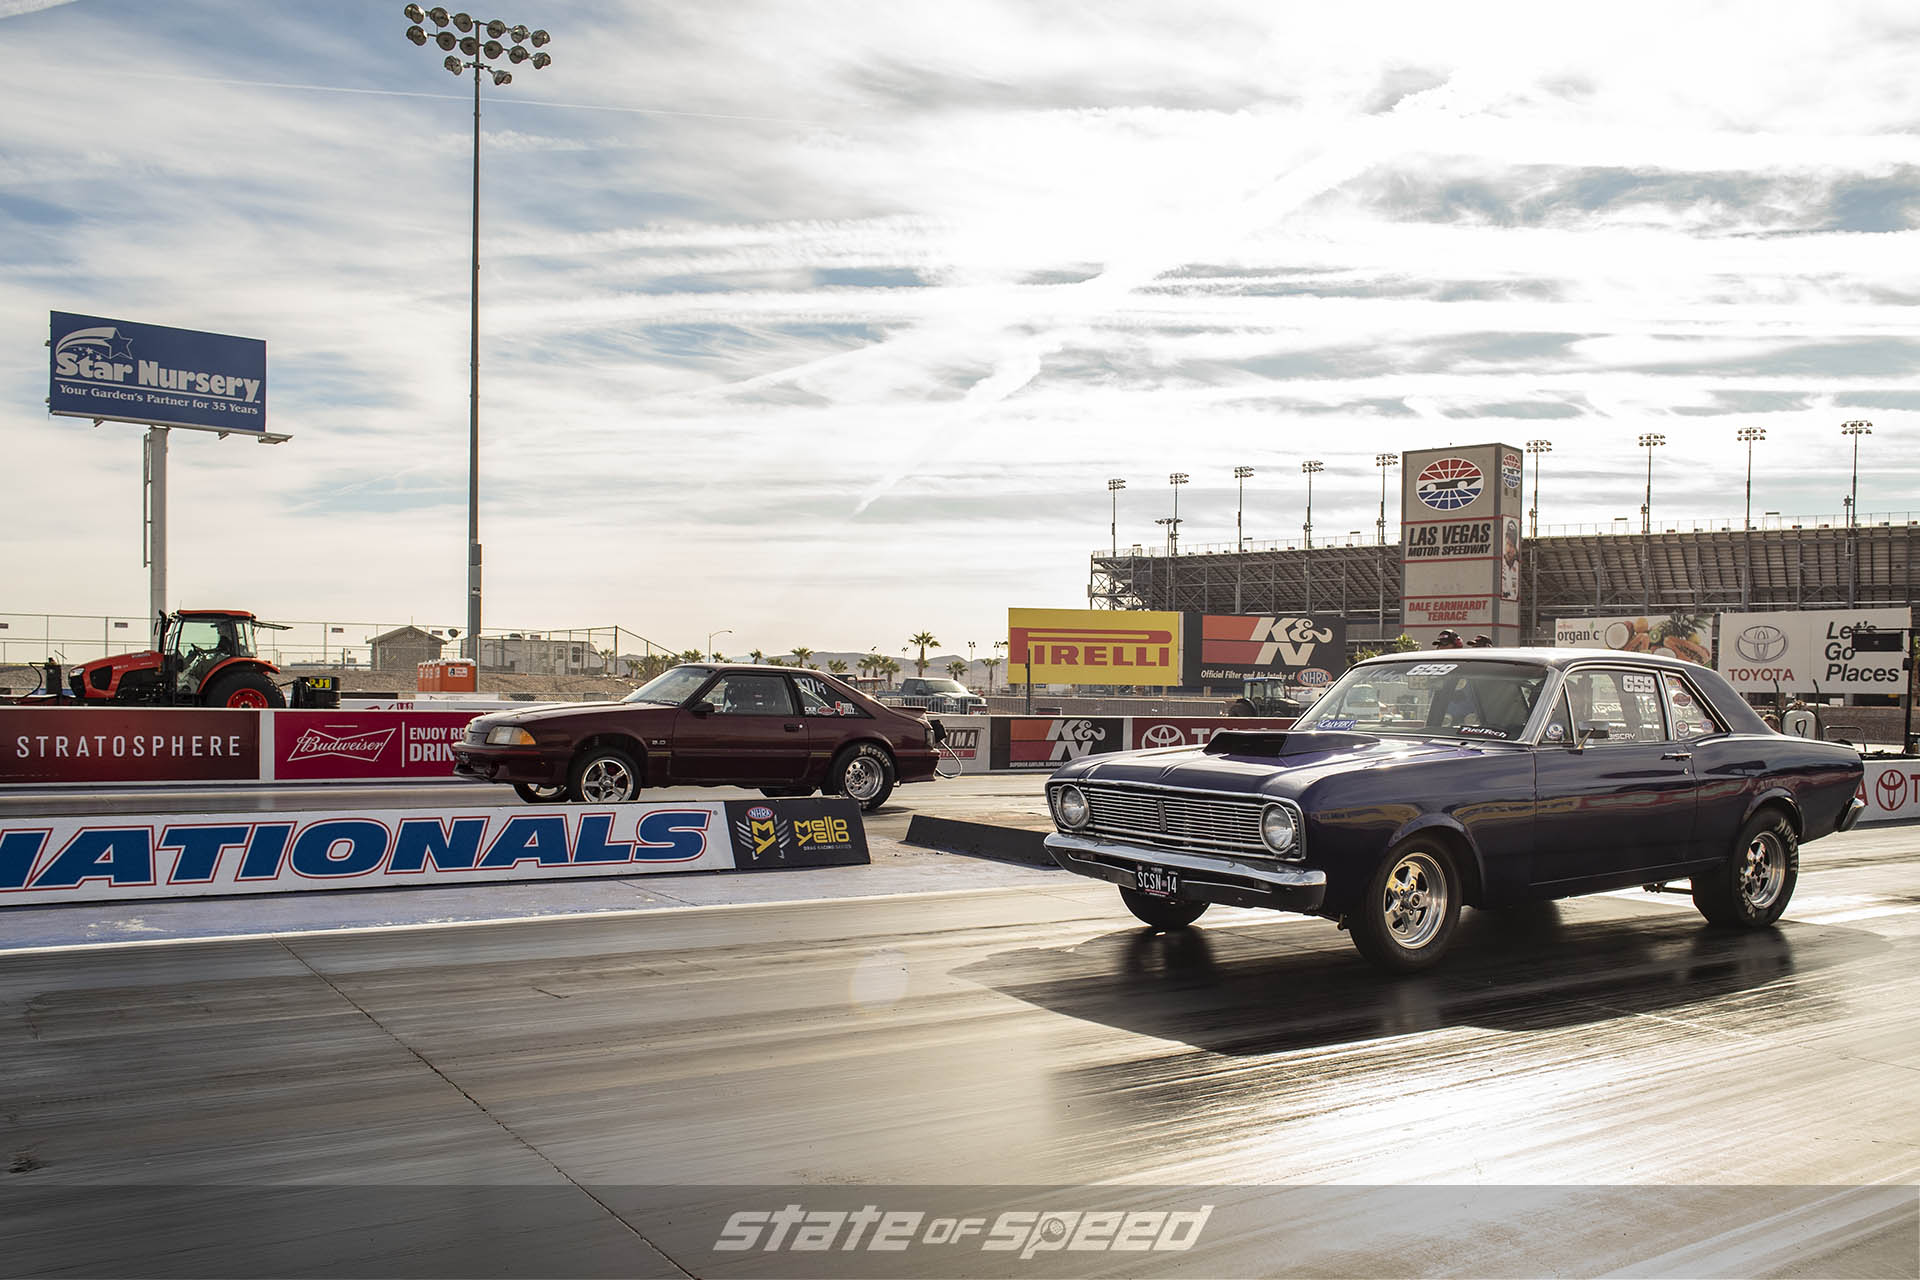 Ford Falcon versus Fox Body Mustang at the dragstrip heads up